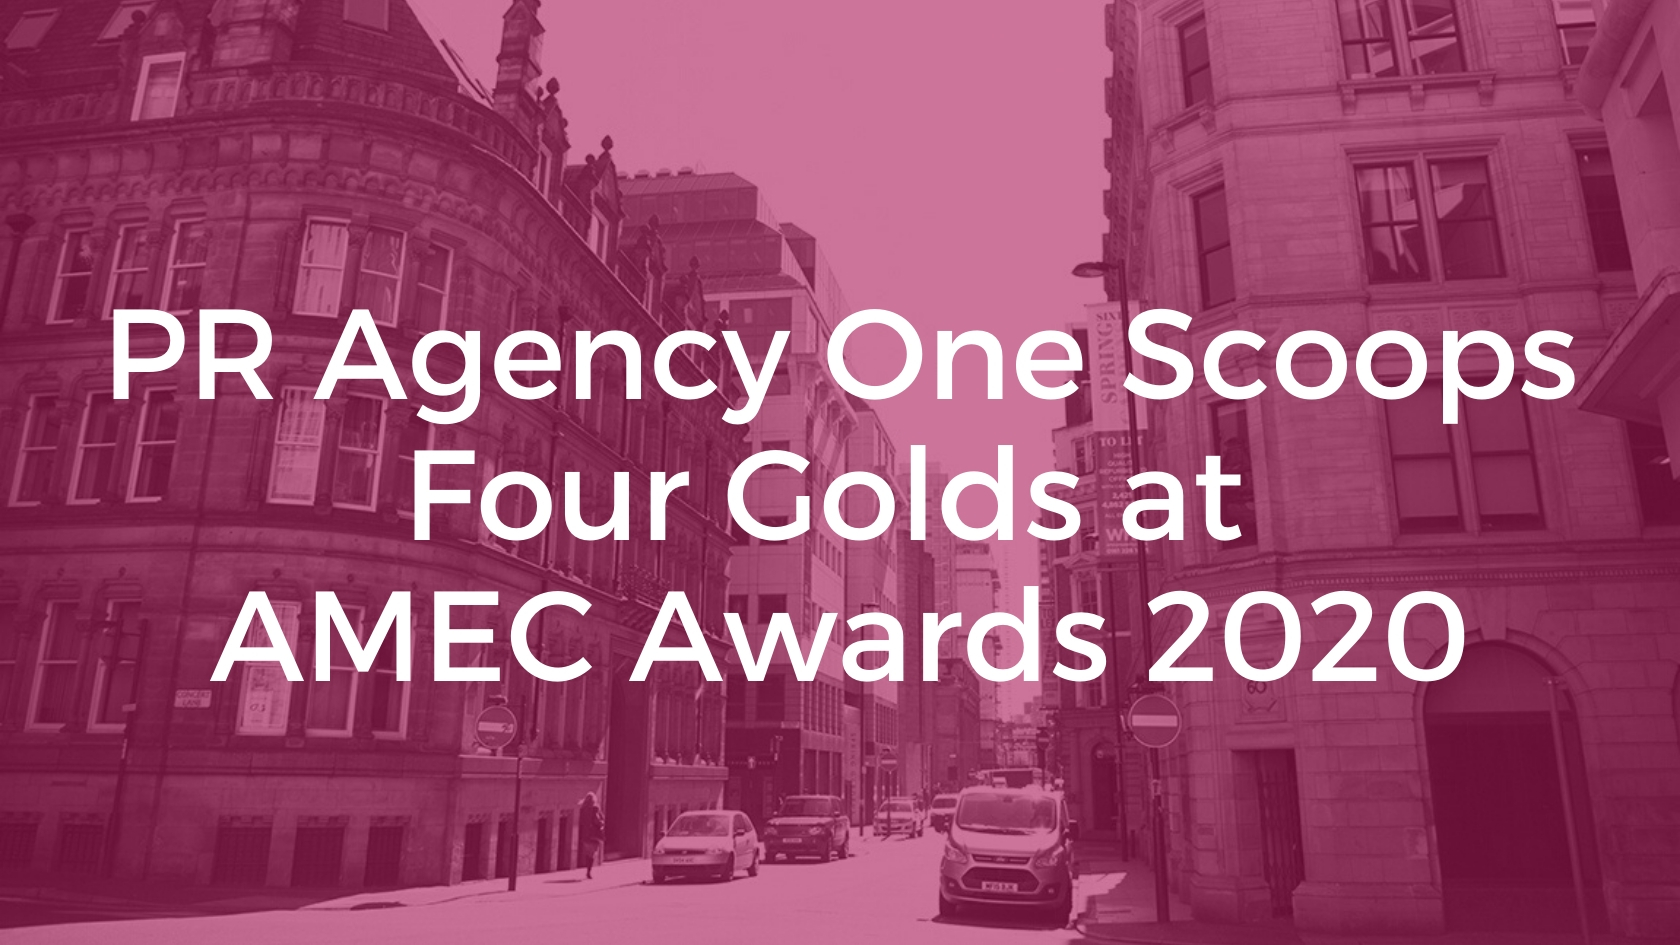 AMEC Award winning PR agency